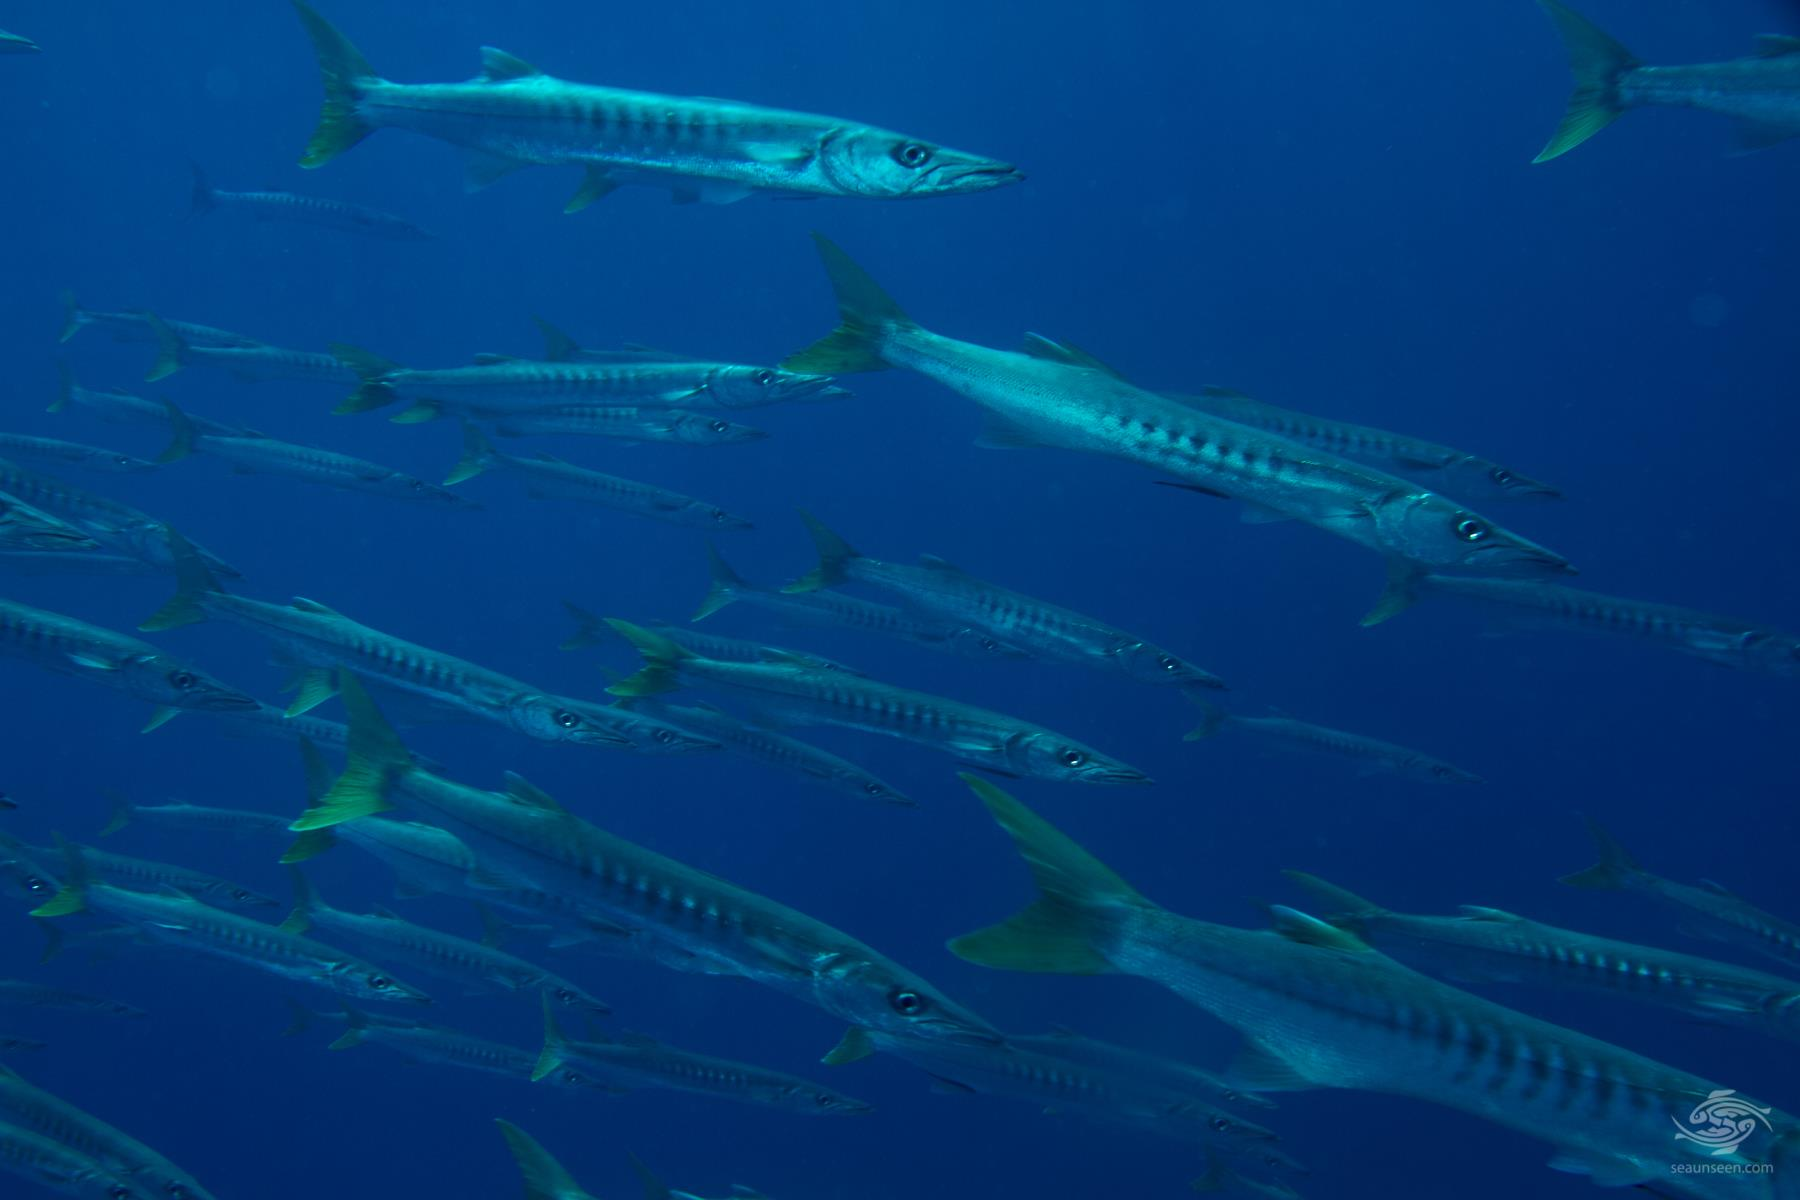 A shoal of sawtooth barracuda Sphyraena putnamae